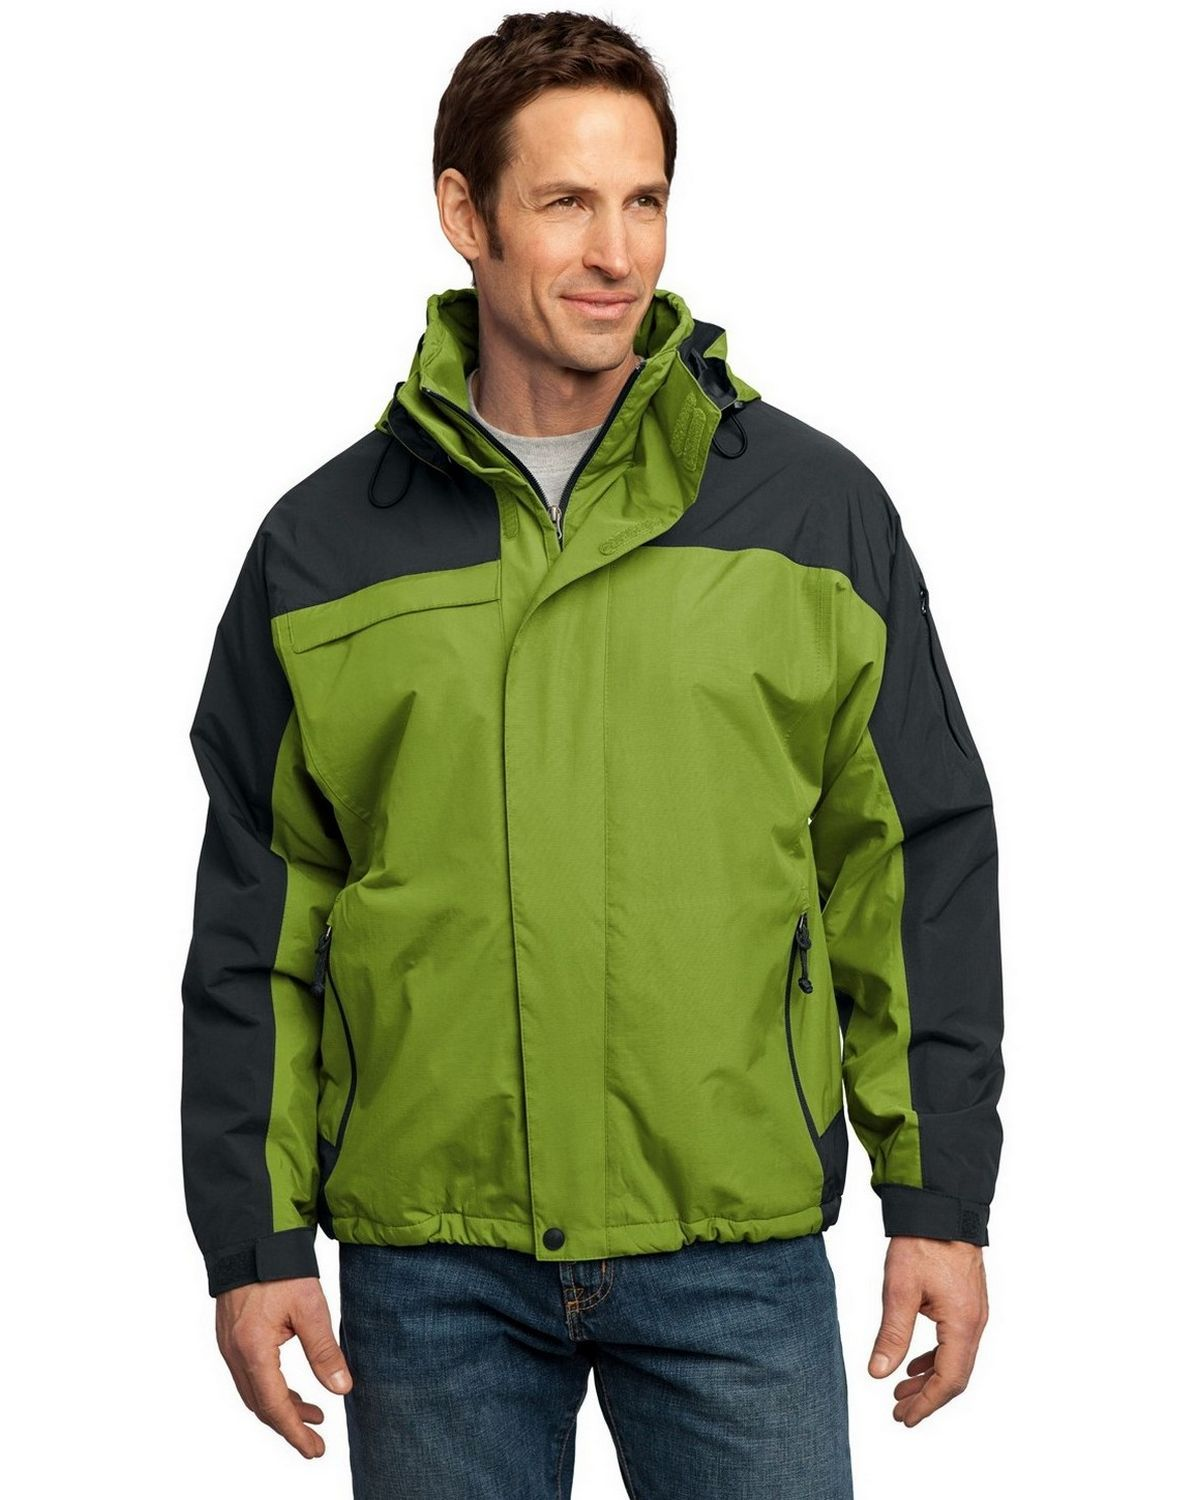 Port Authority J792 Nootka Jacket